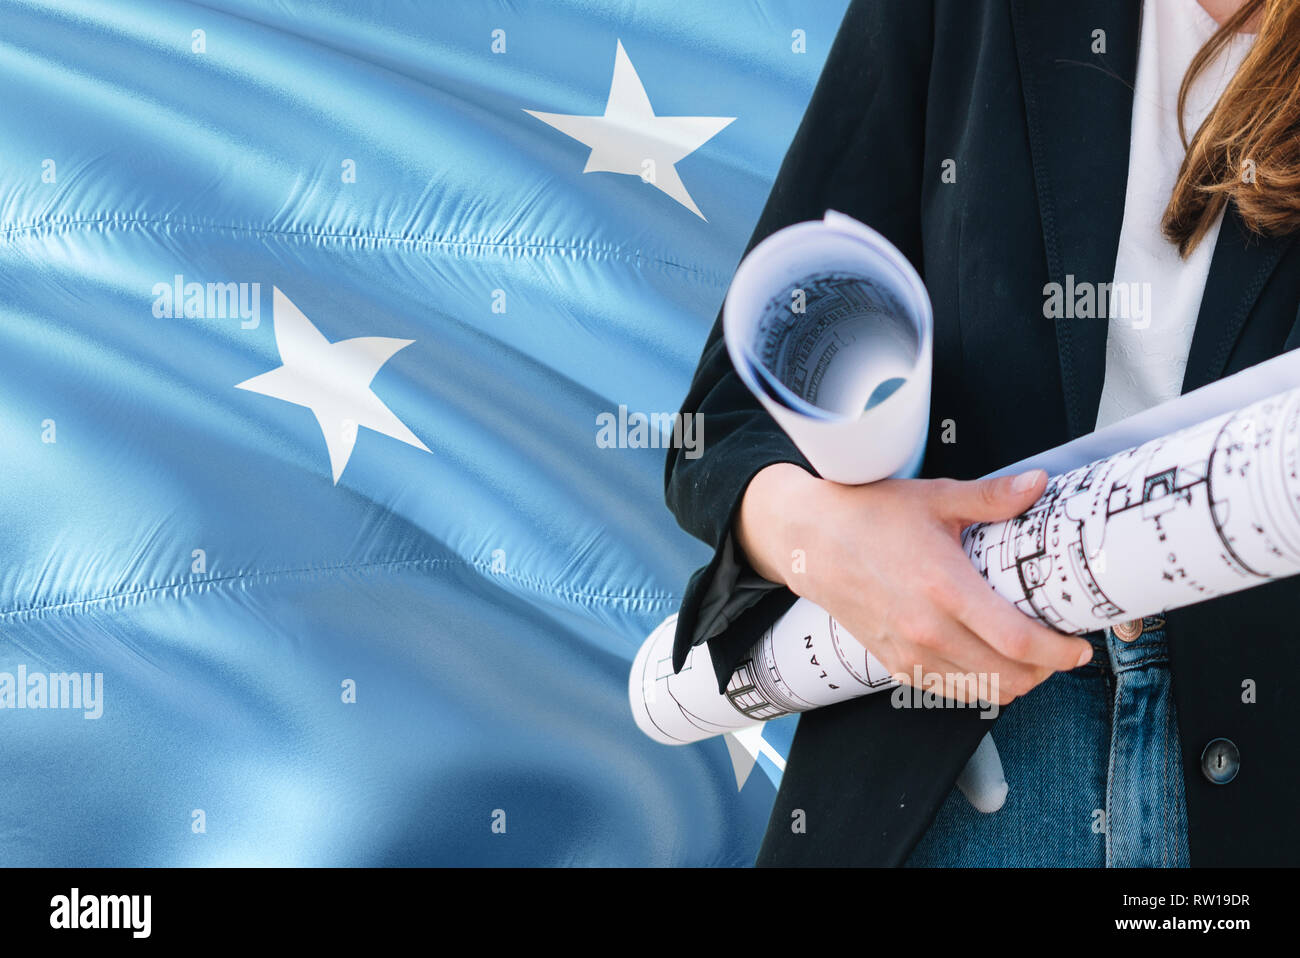 Micronesian Architect woman holding blueprint against Micronesia waving flag background. Construction and architecture concept. - Stock Image